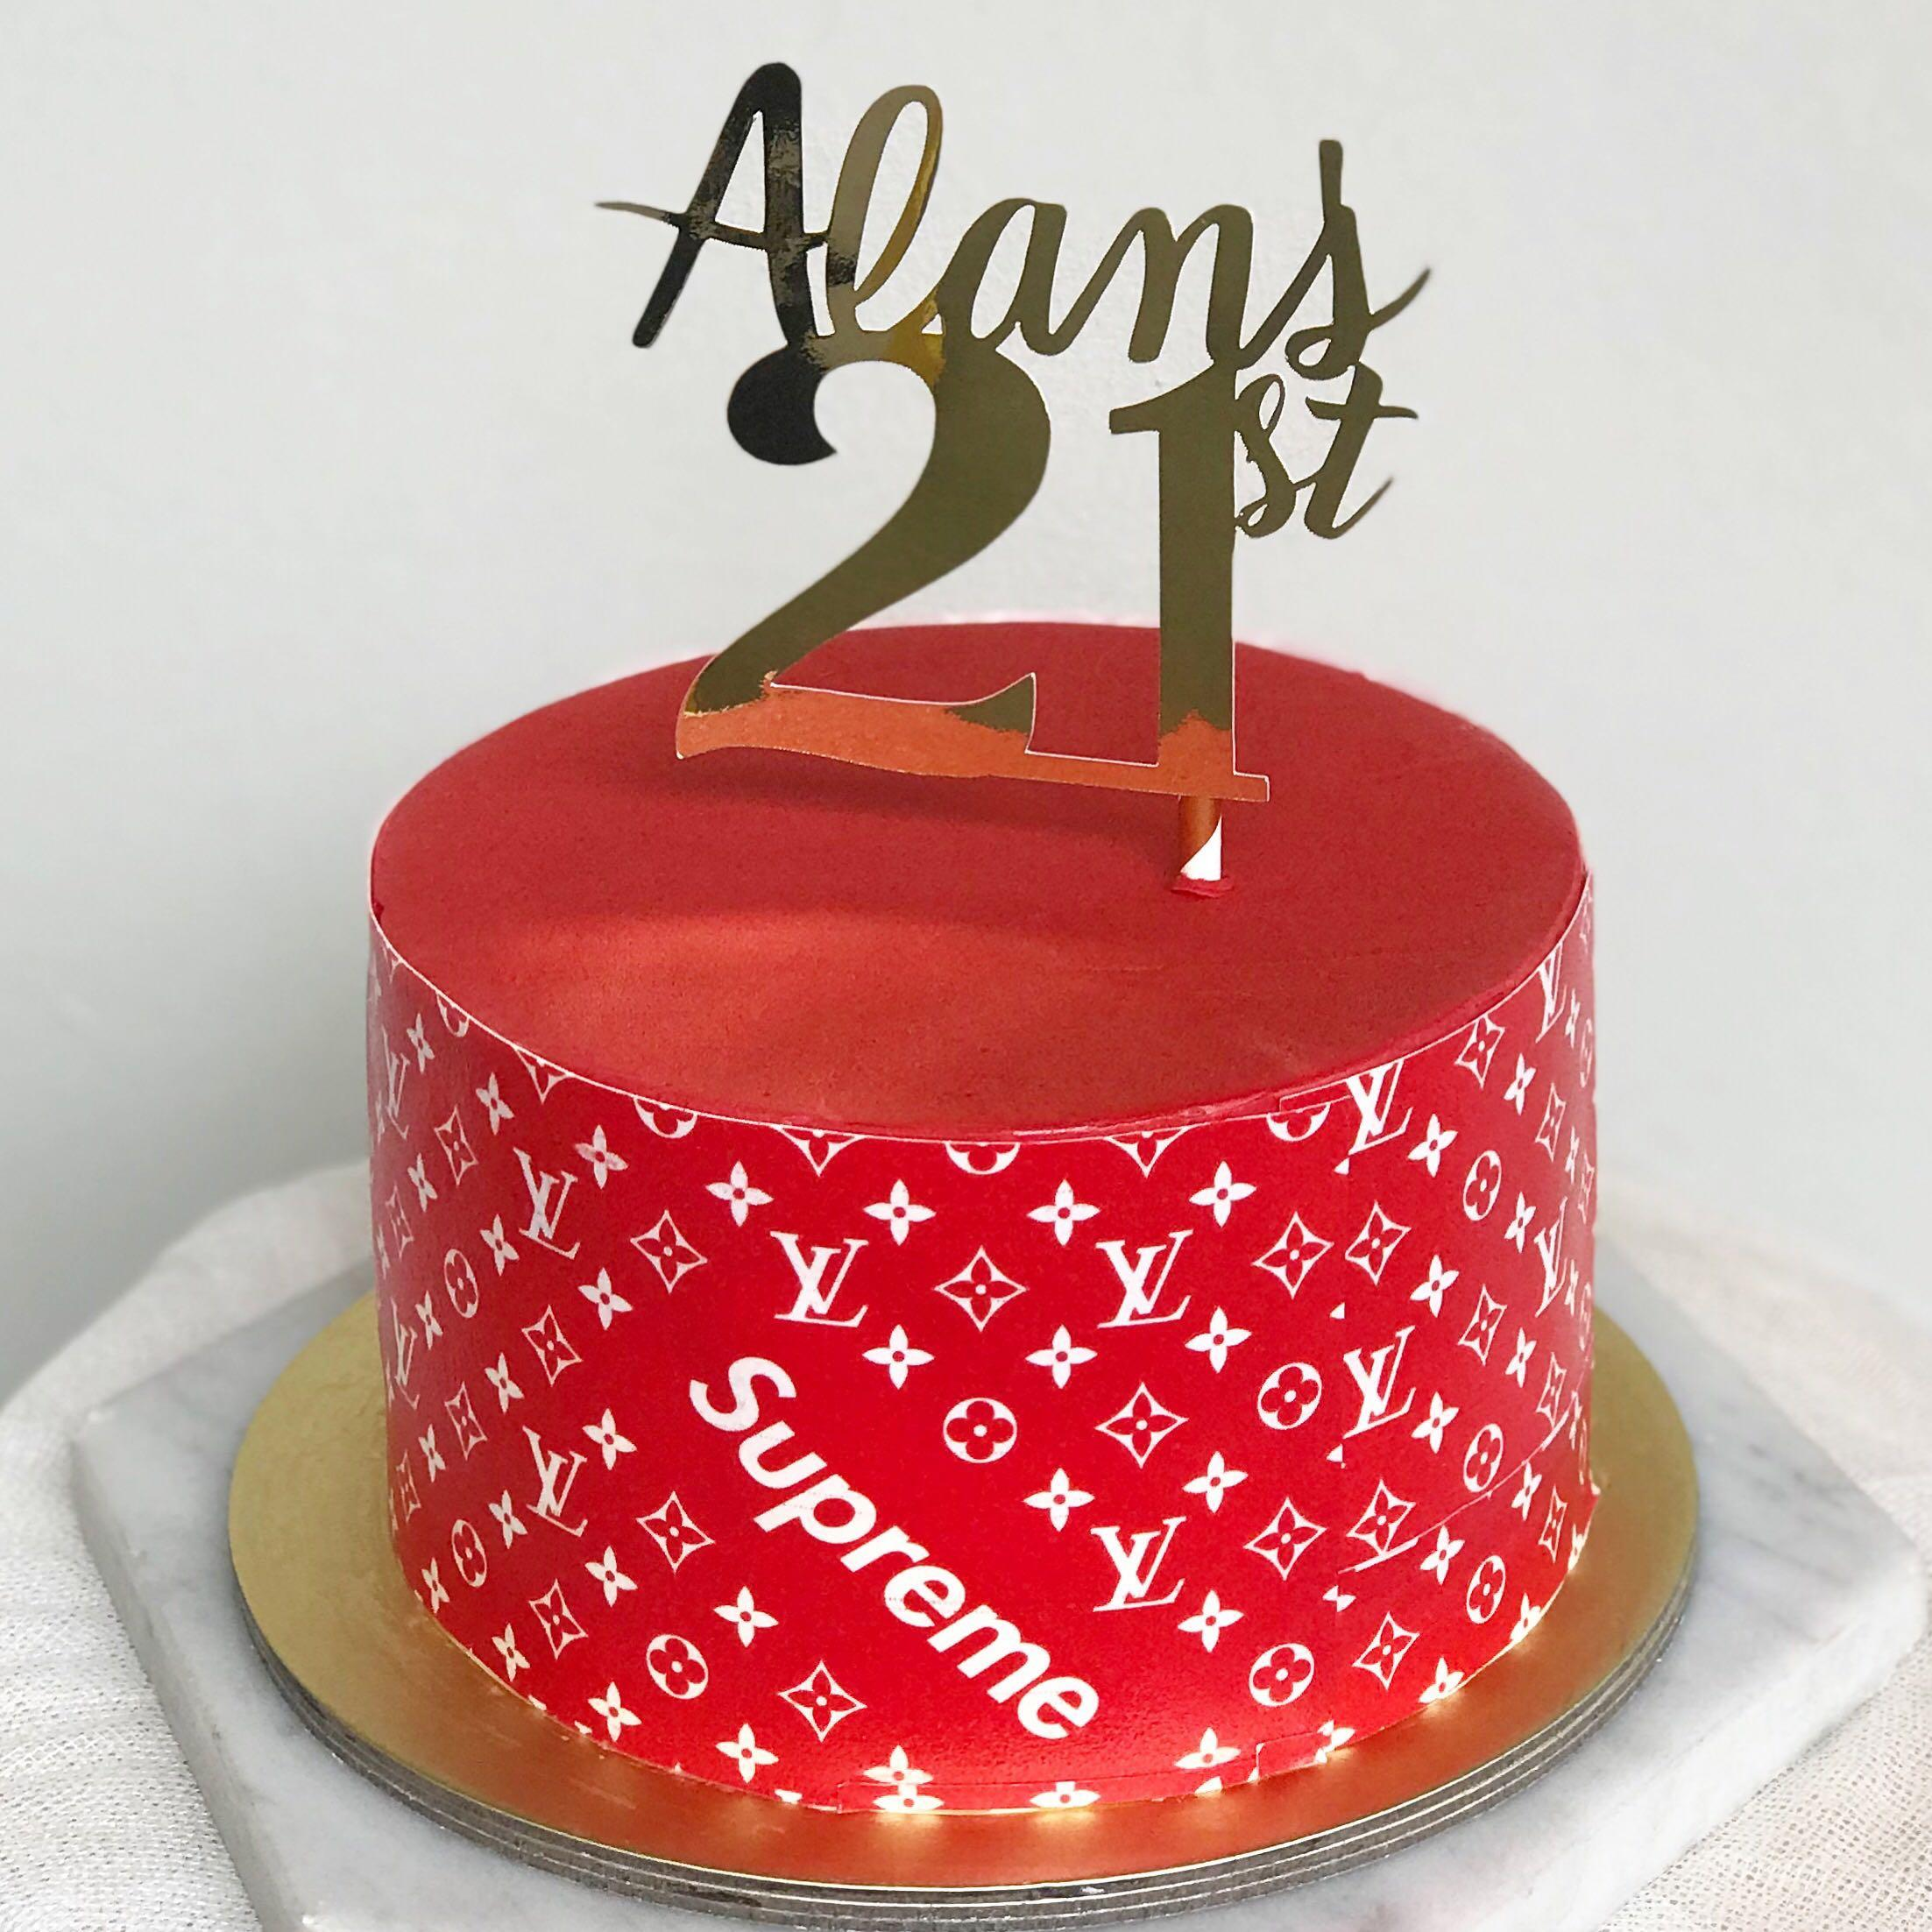 Louis Vuitton X Supreme Cake, Food & Drinks, Baked Goods On Carousell